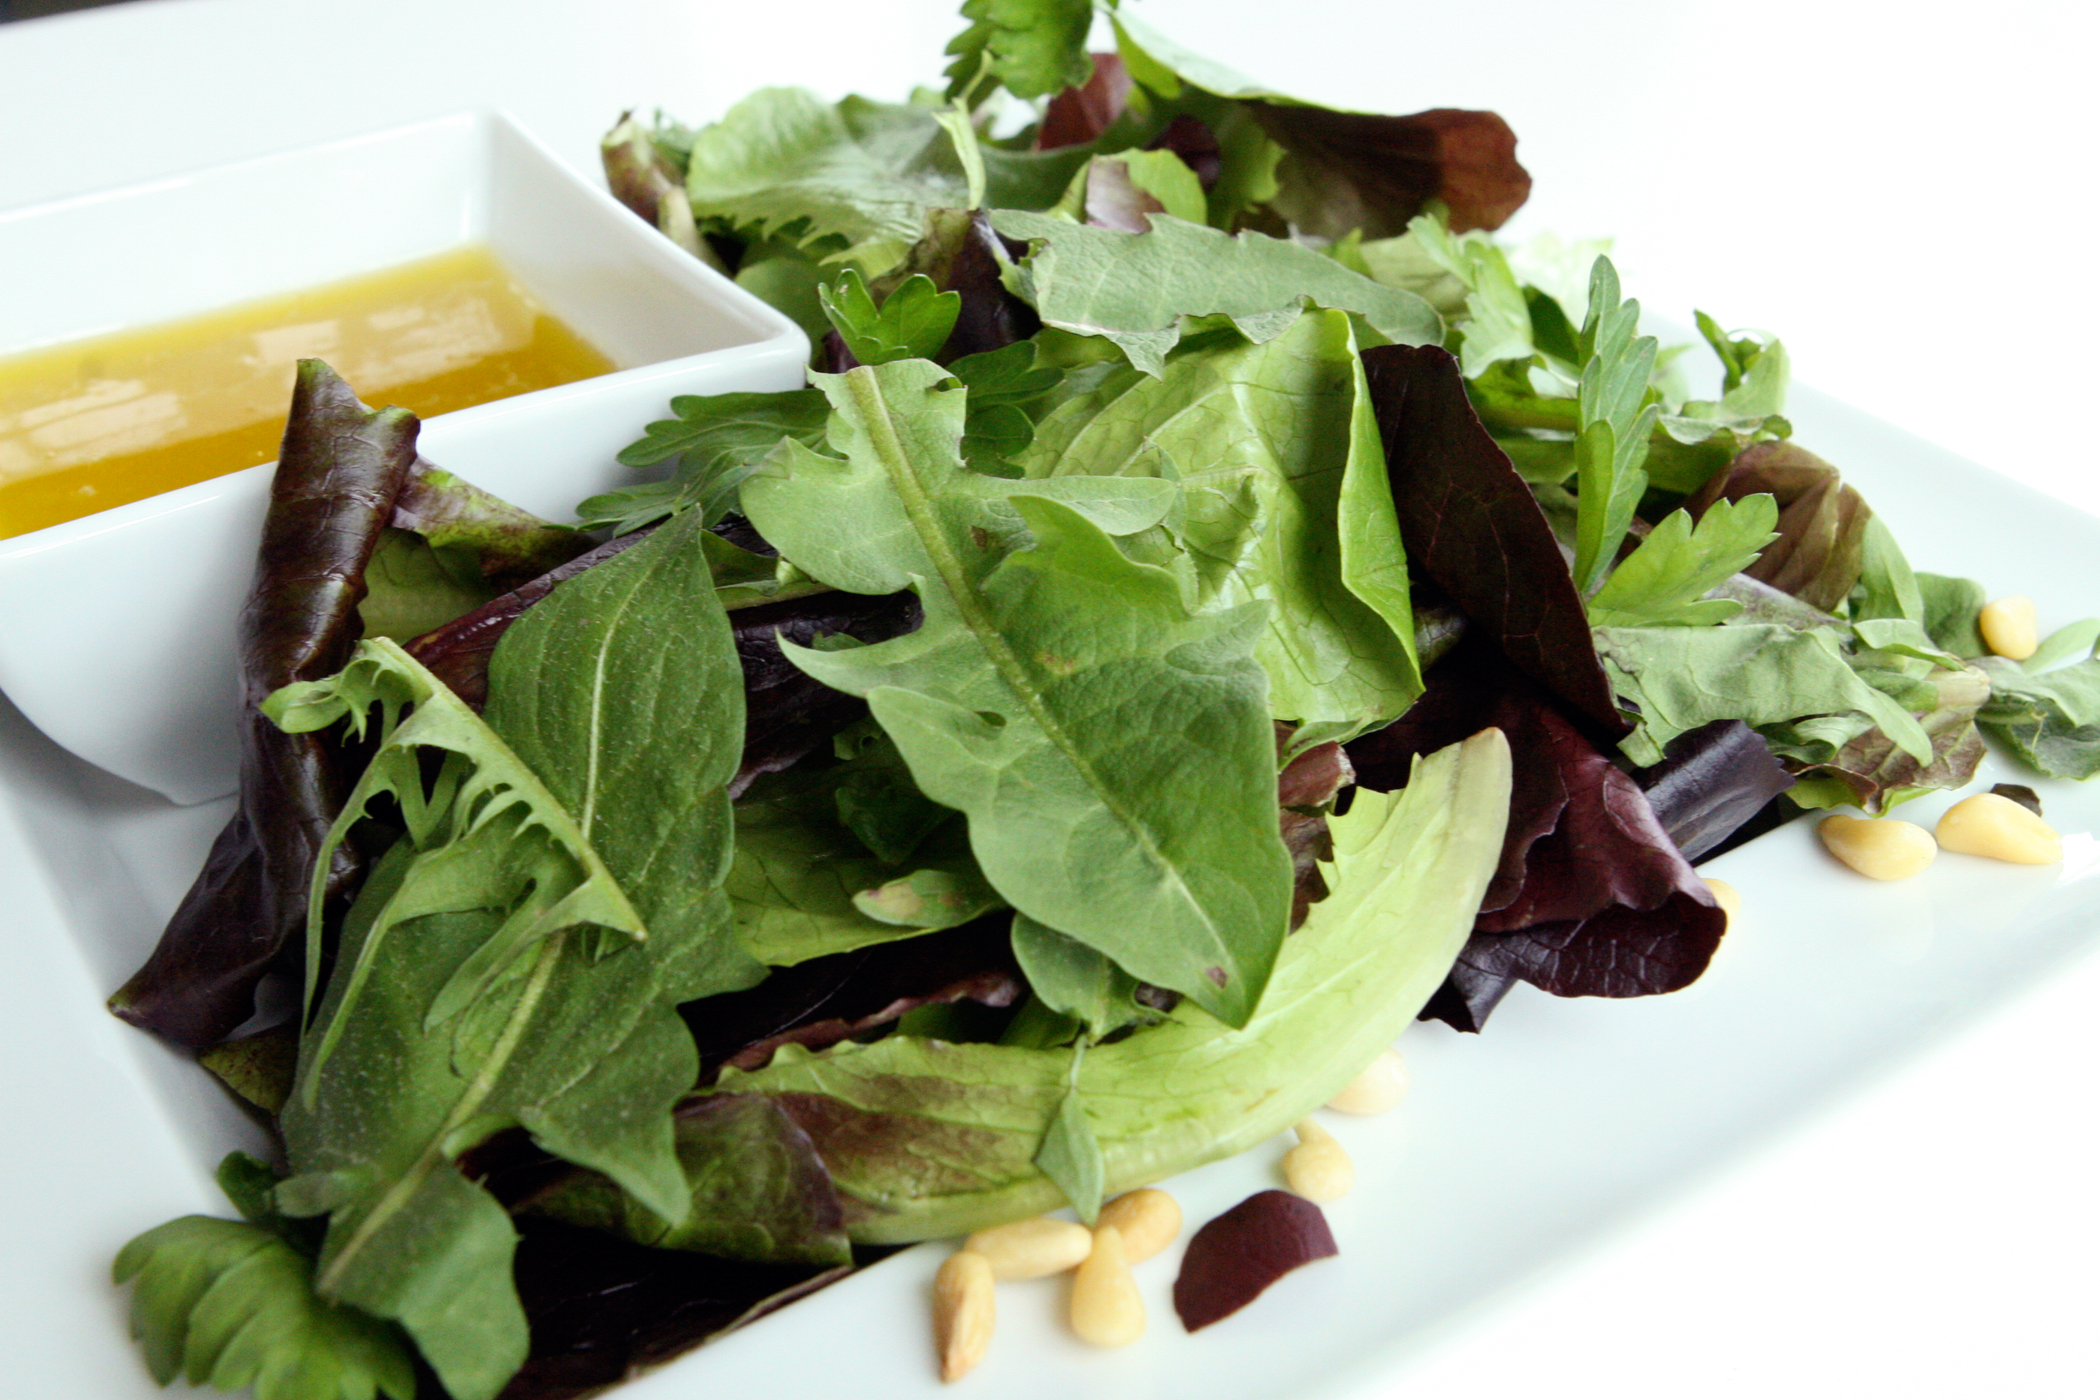 Close-up of a salad dish with nuts and olive oil in a small dip dish